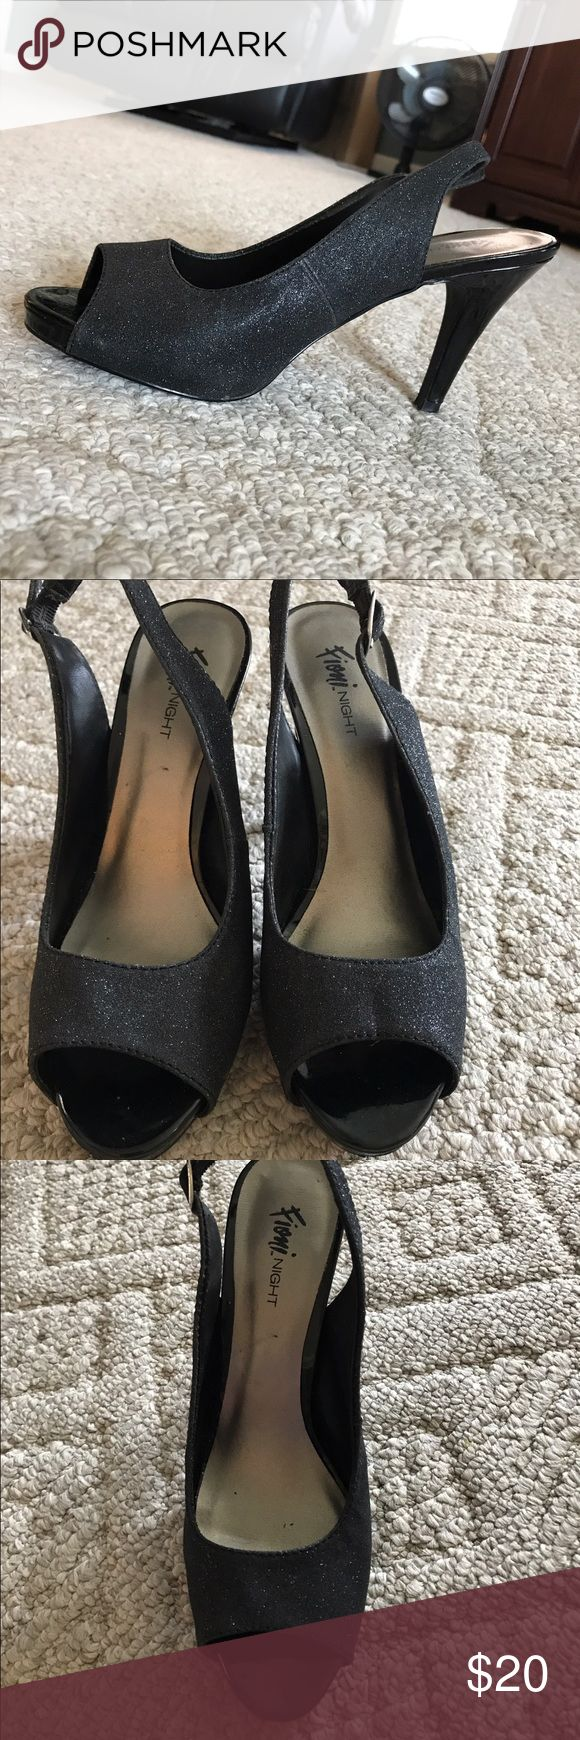 Black sparkle heels Black heels with a little sparkle. Adjustable strap in back. Perfect for prom or homecoming. Worn once. Fioni Night  Shoes Heels